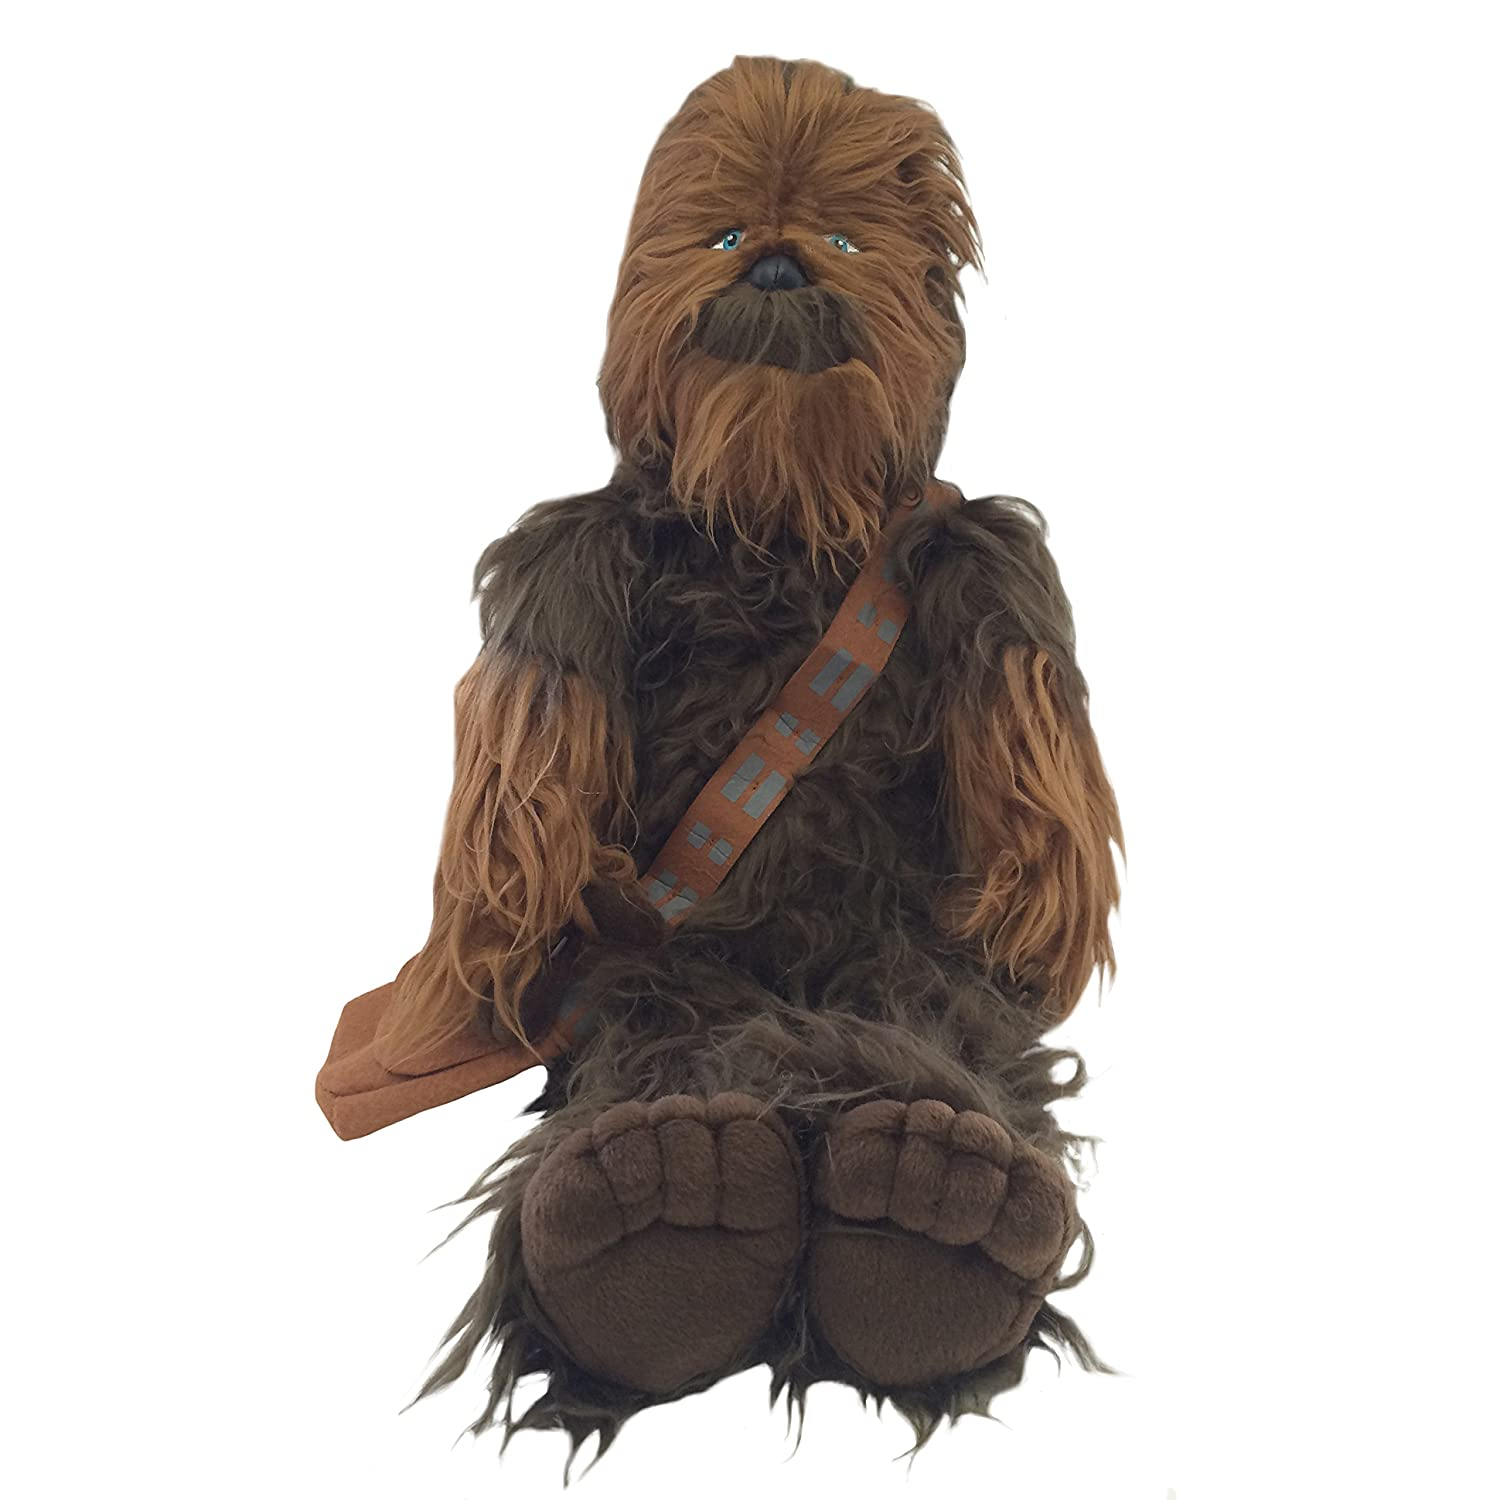 Jay Franco Plush Stuffed Chewbacca Pillow Buddy - Kids Super Soft Polyester Microfiber, 24 inch (Official Star Wars Product), B